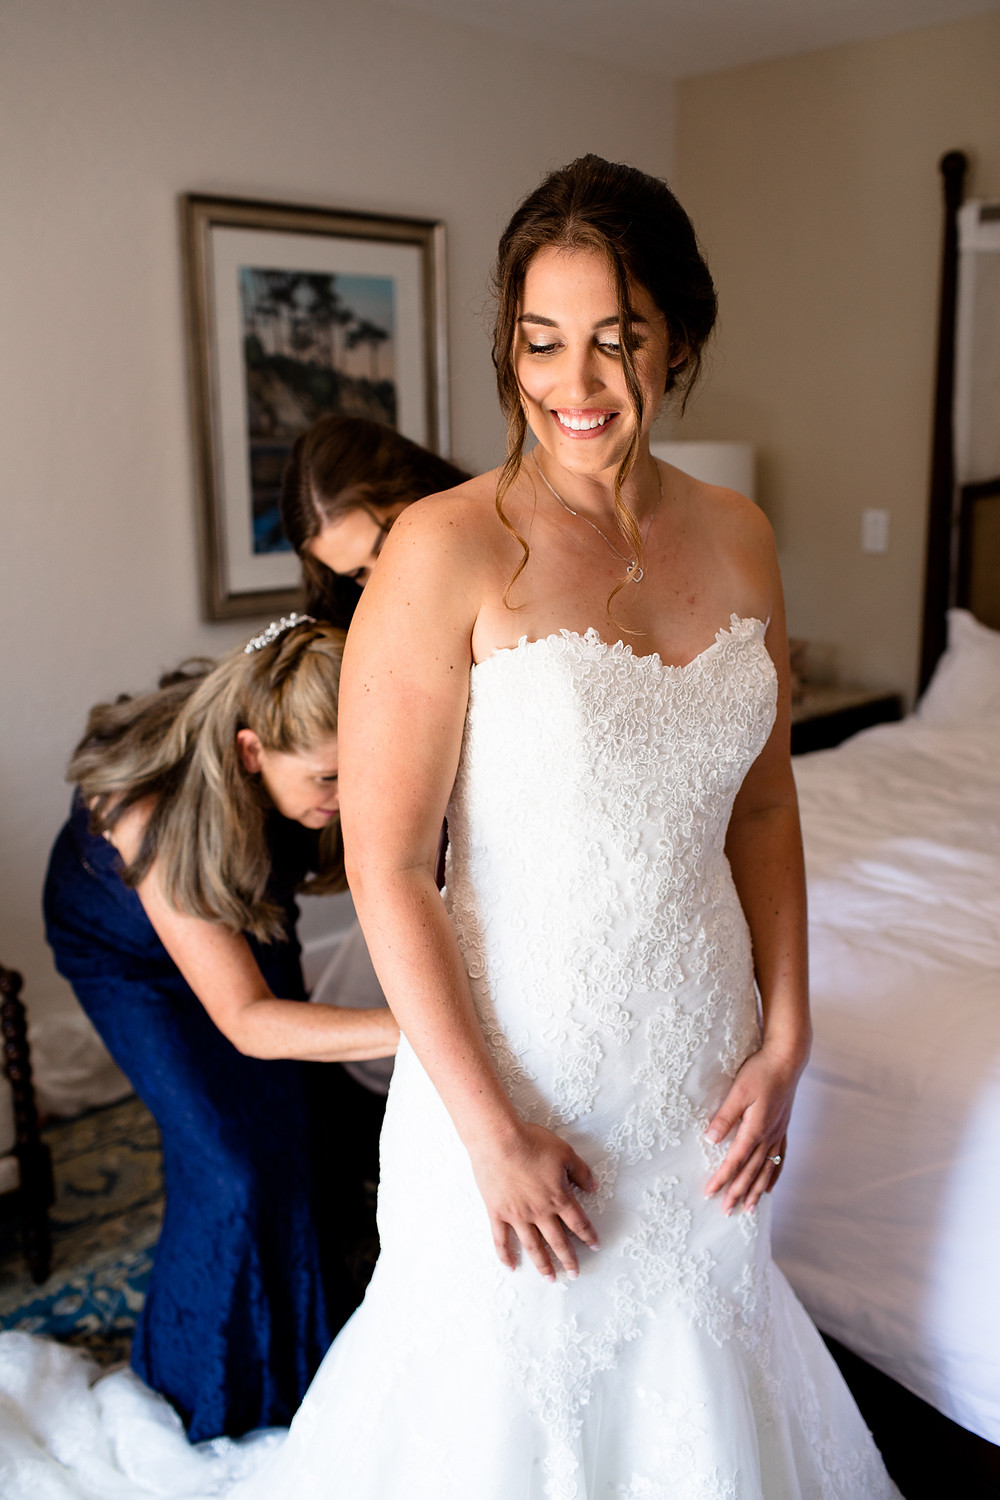 bride getting zipped up in wedding dress